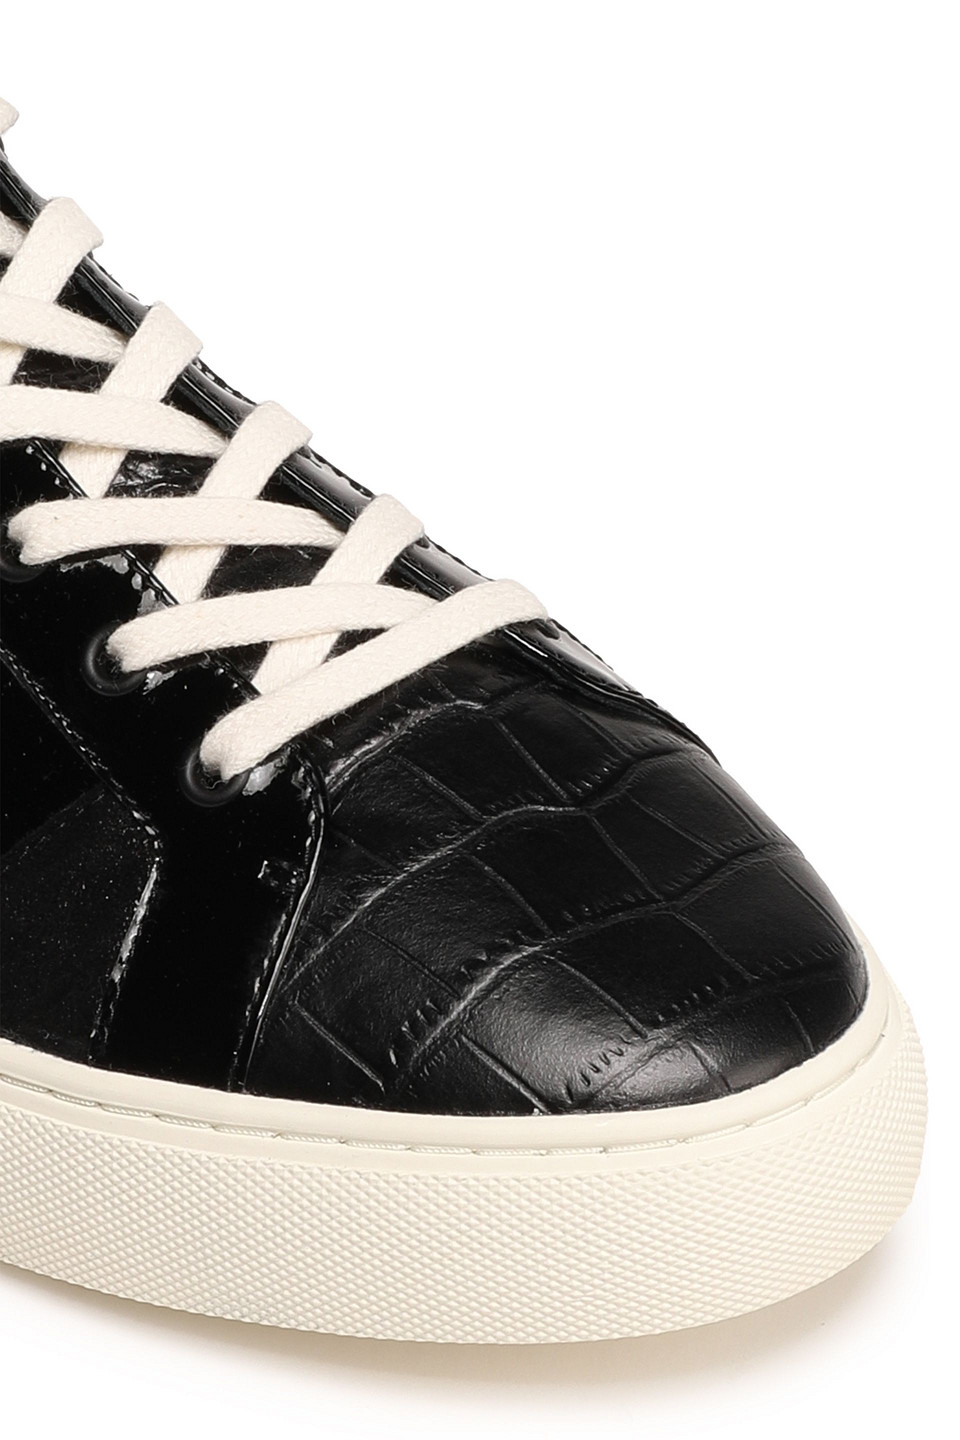 Tory Burch | Tory Burch Woman Paneled Leather Sneakers Black | Clouty